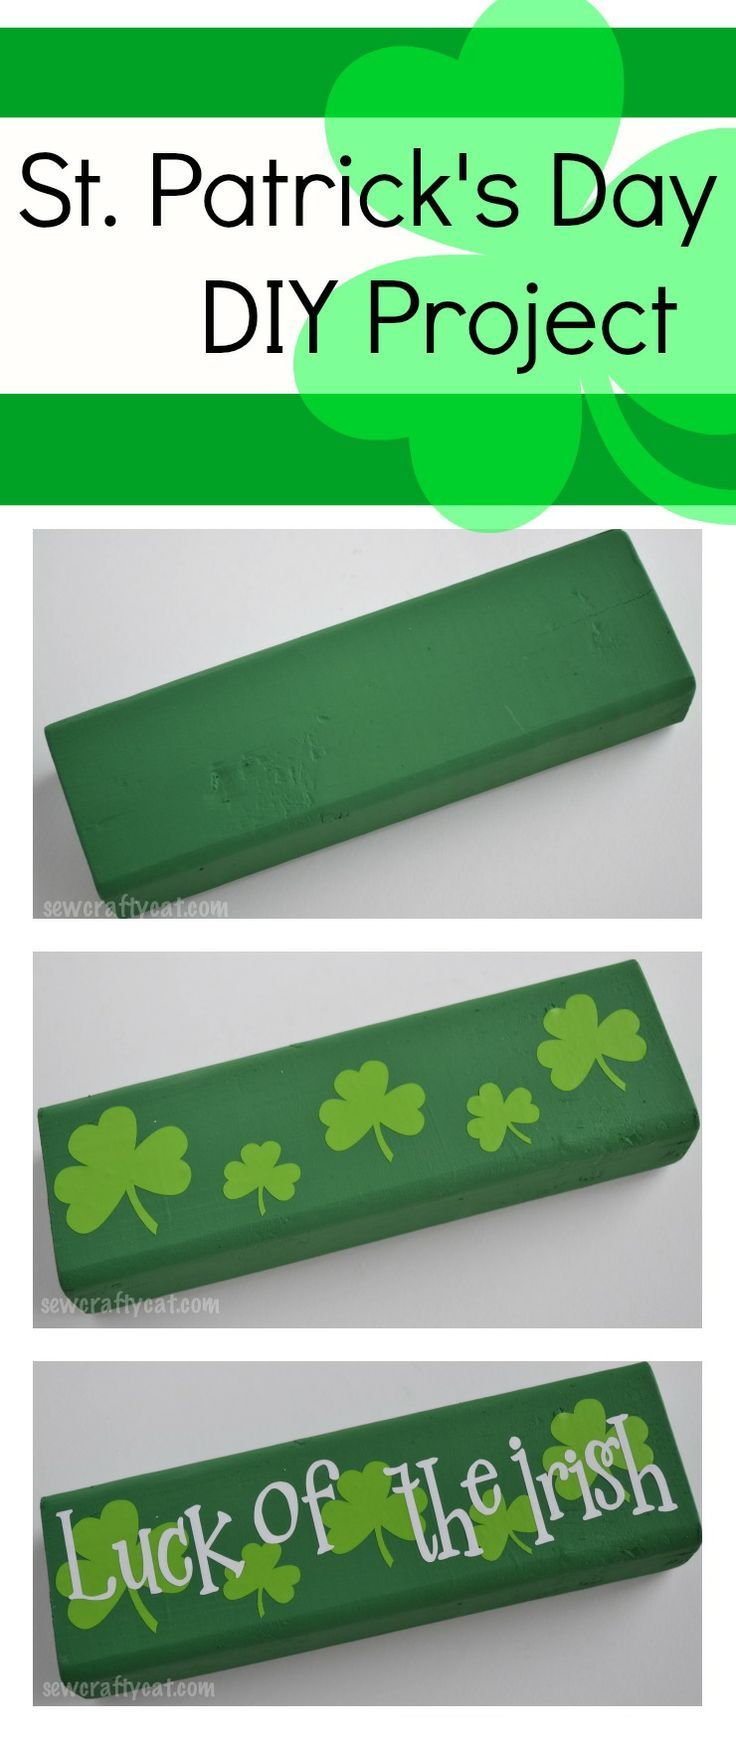 St  Patrick  39 s Day DIY Tutorial   Use your Silhouette Cameo or Cricut to make this cute wood block for St  Paddy  39 s Day  A great project to make to help learn how to layer vinyl